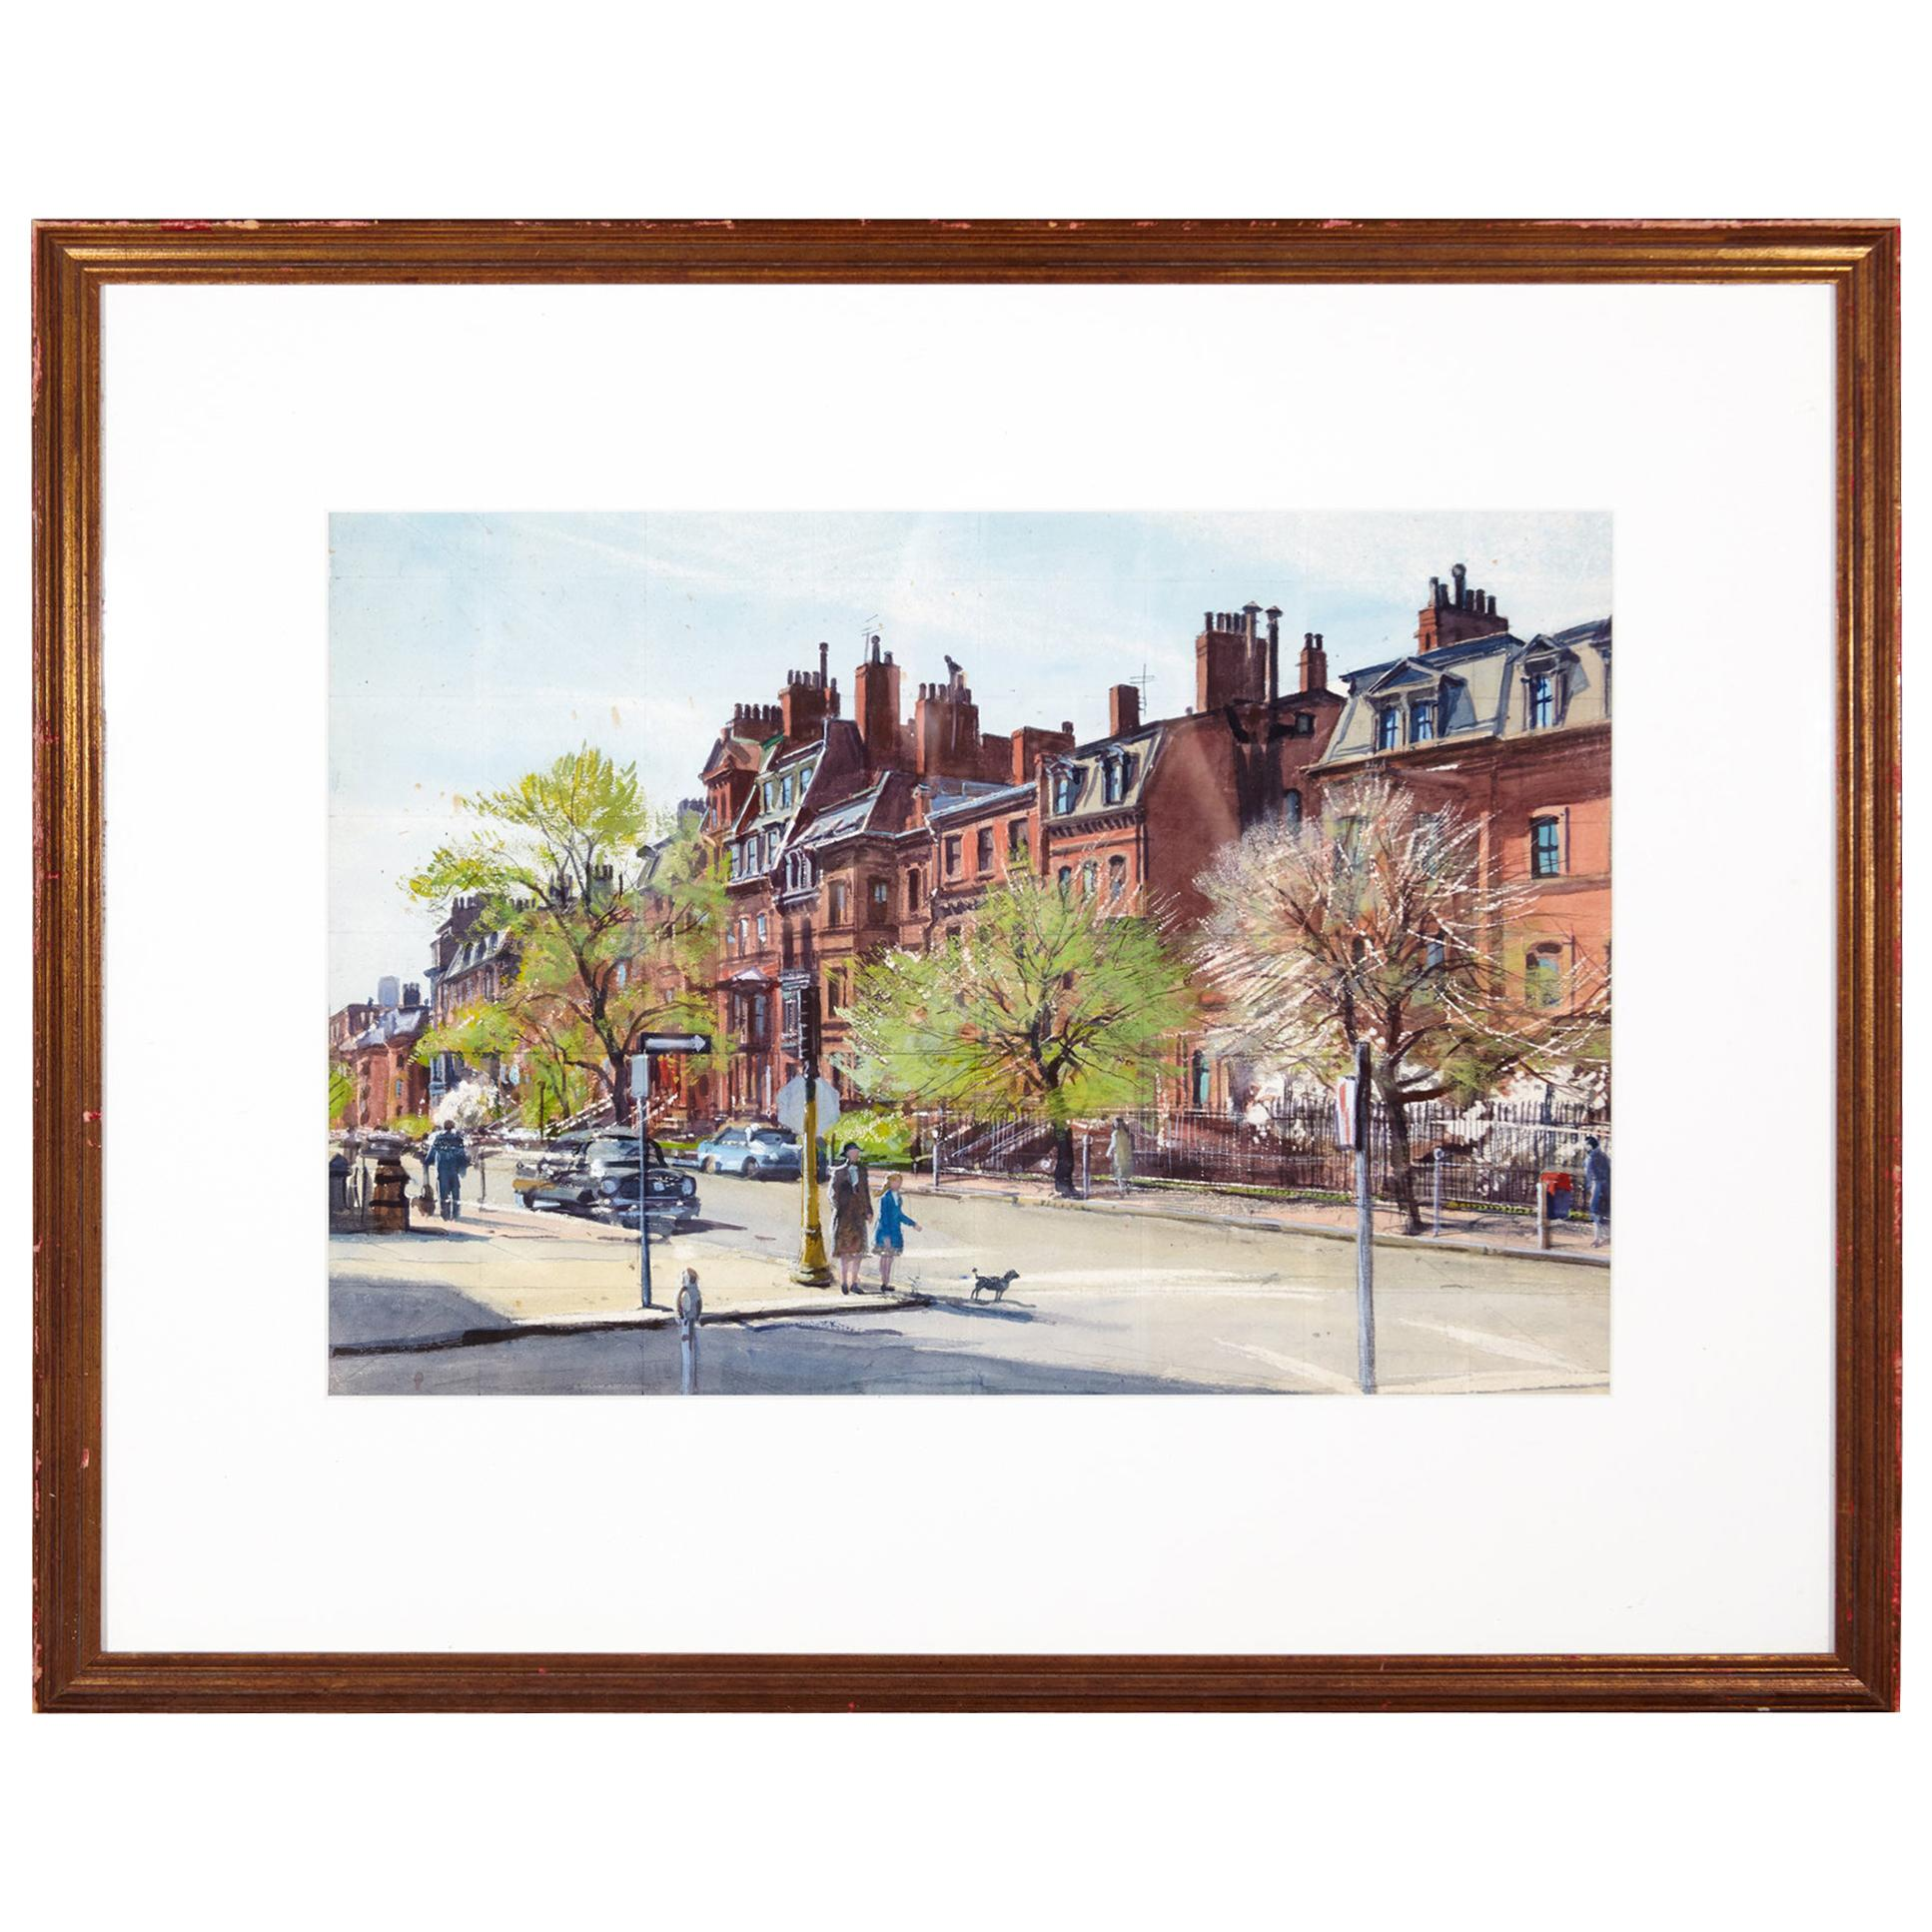 Watercolor Painting 'The Stop Light' by A. Lassell Ripley, Listed Am. Artist